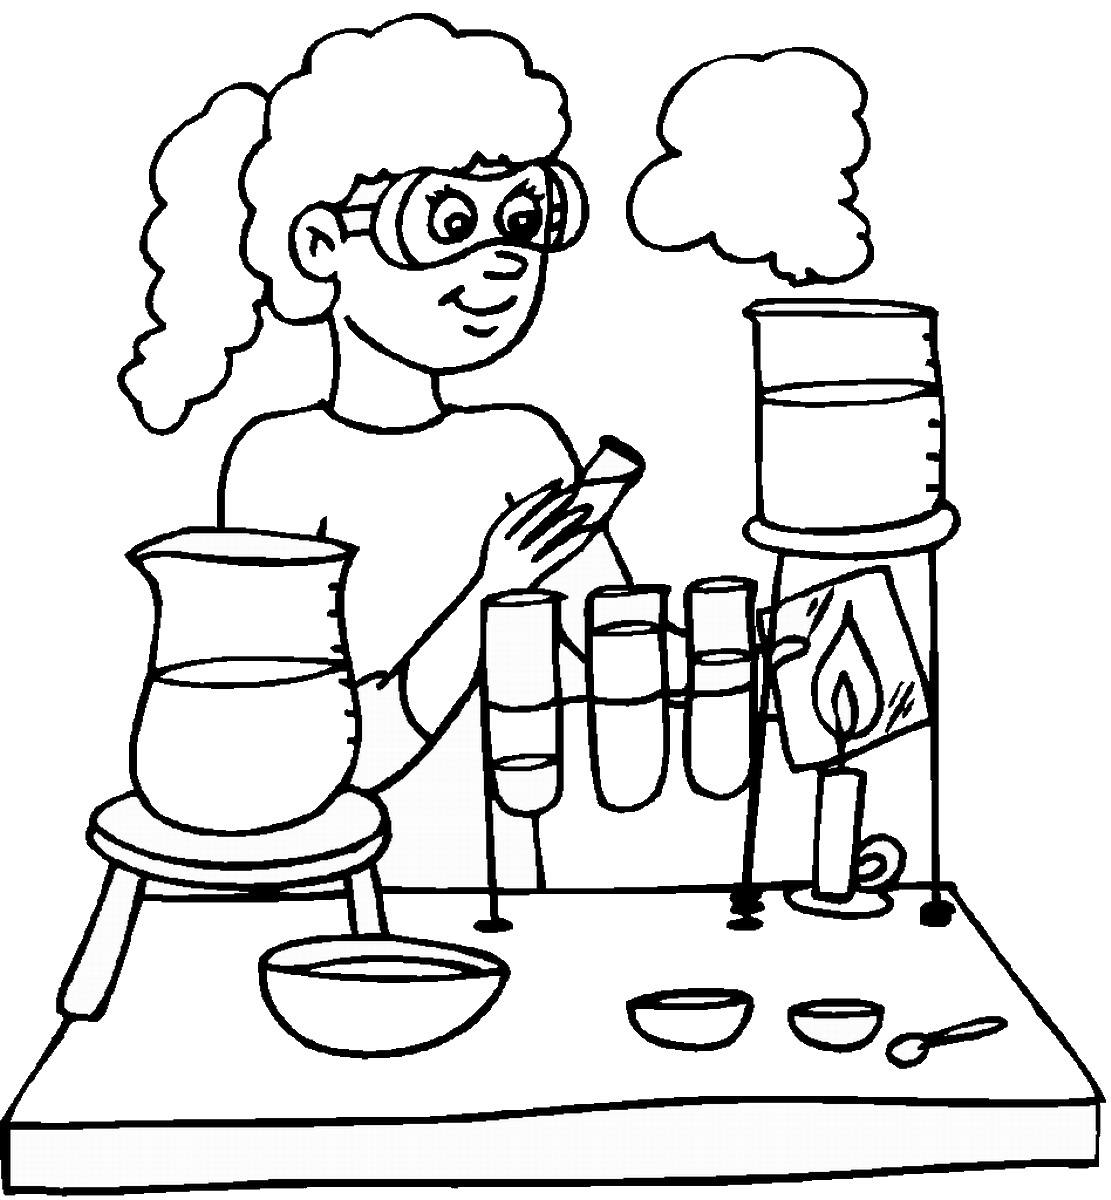 science coloring page science coloring pages coloring science page